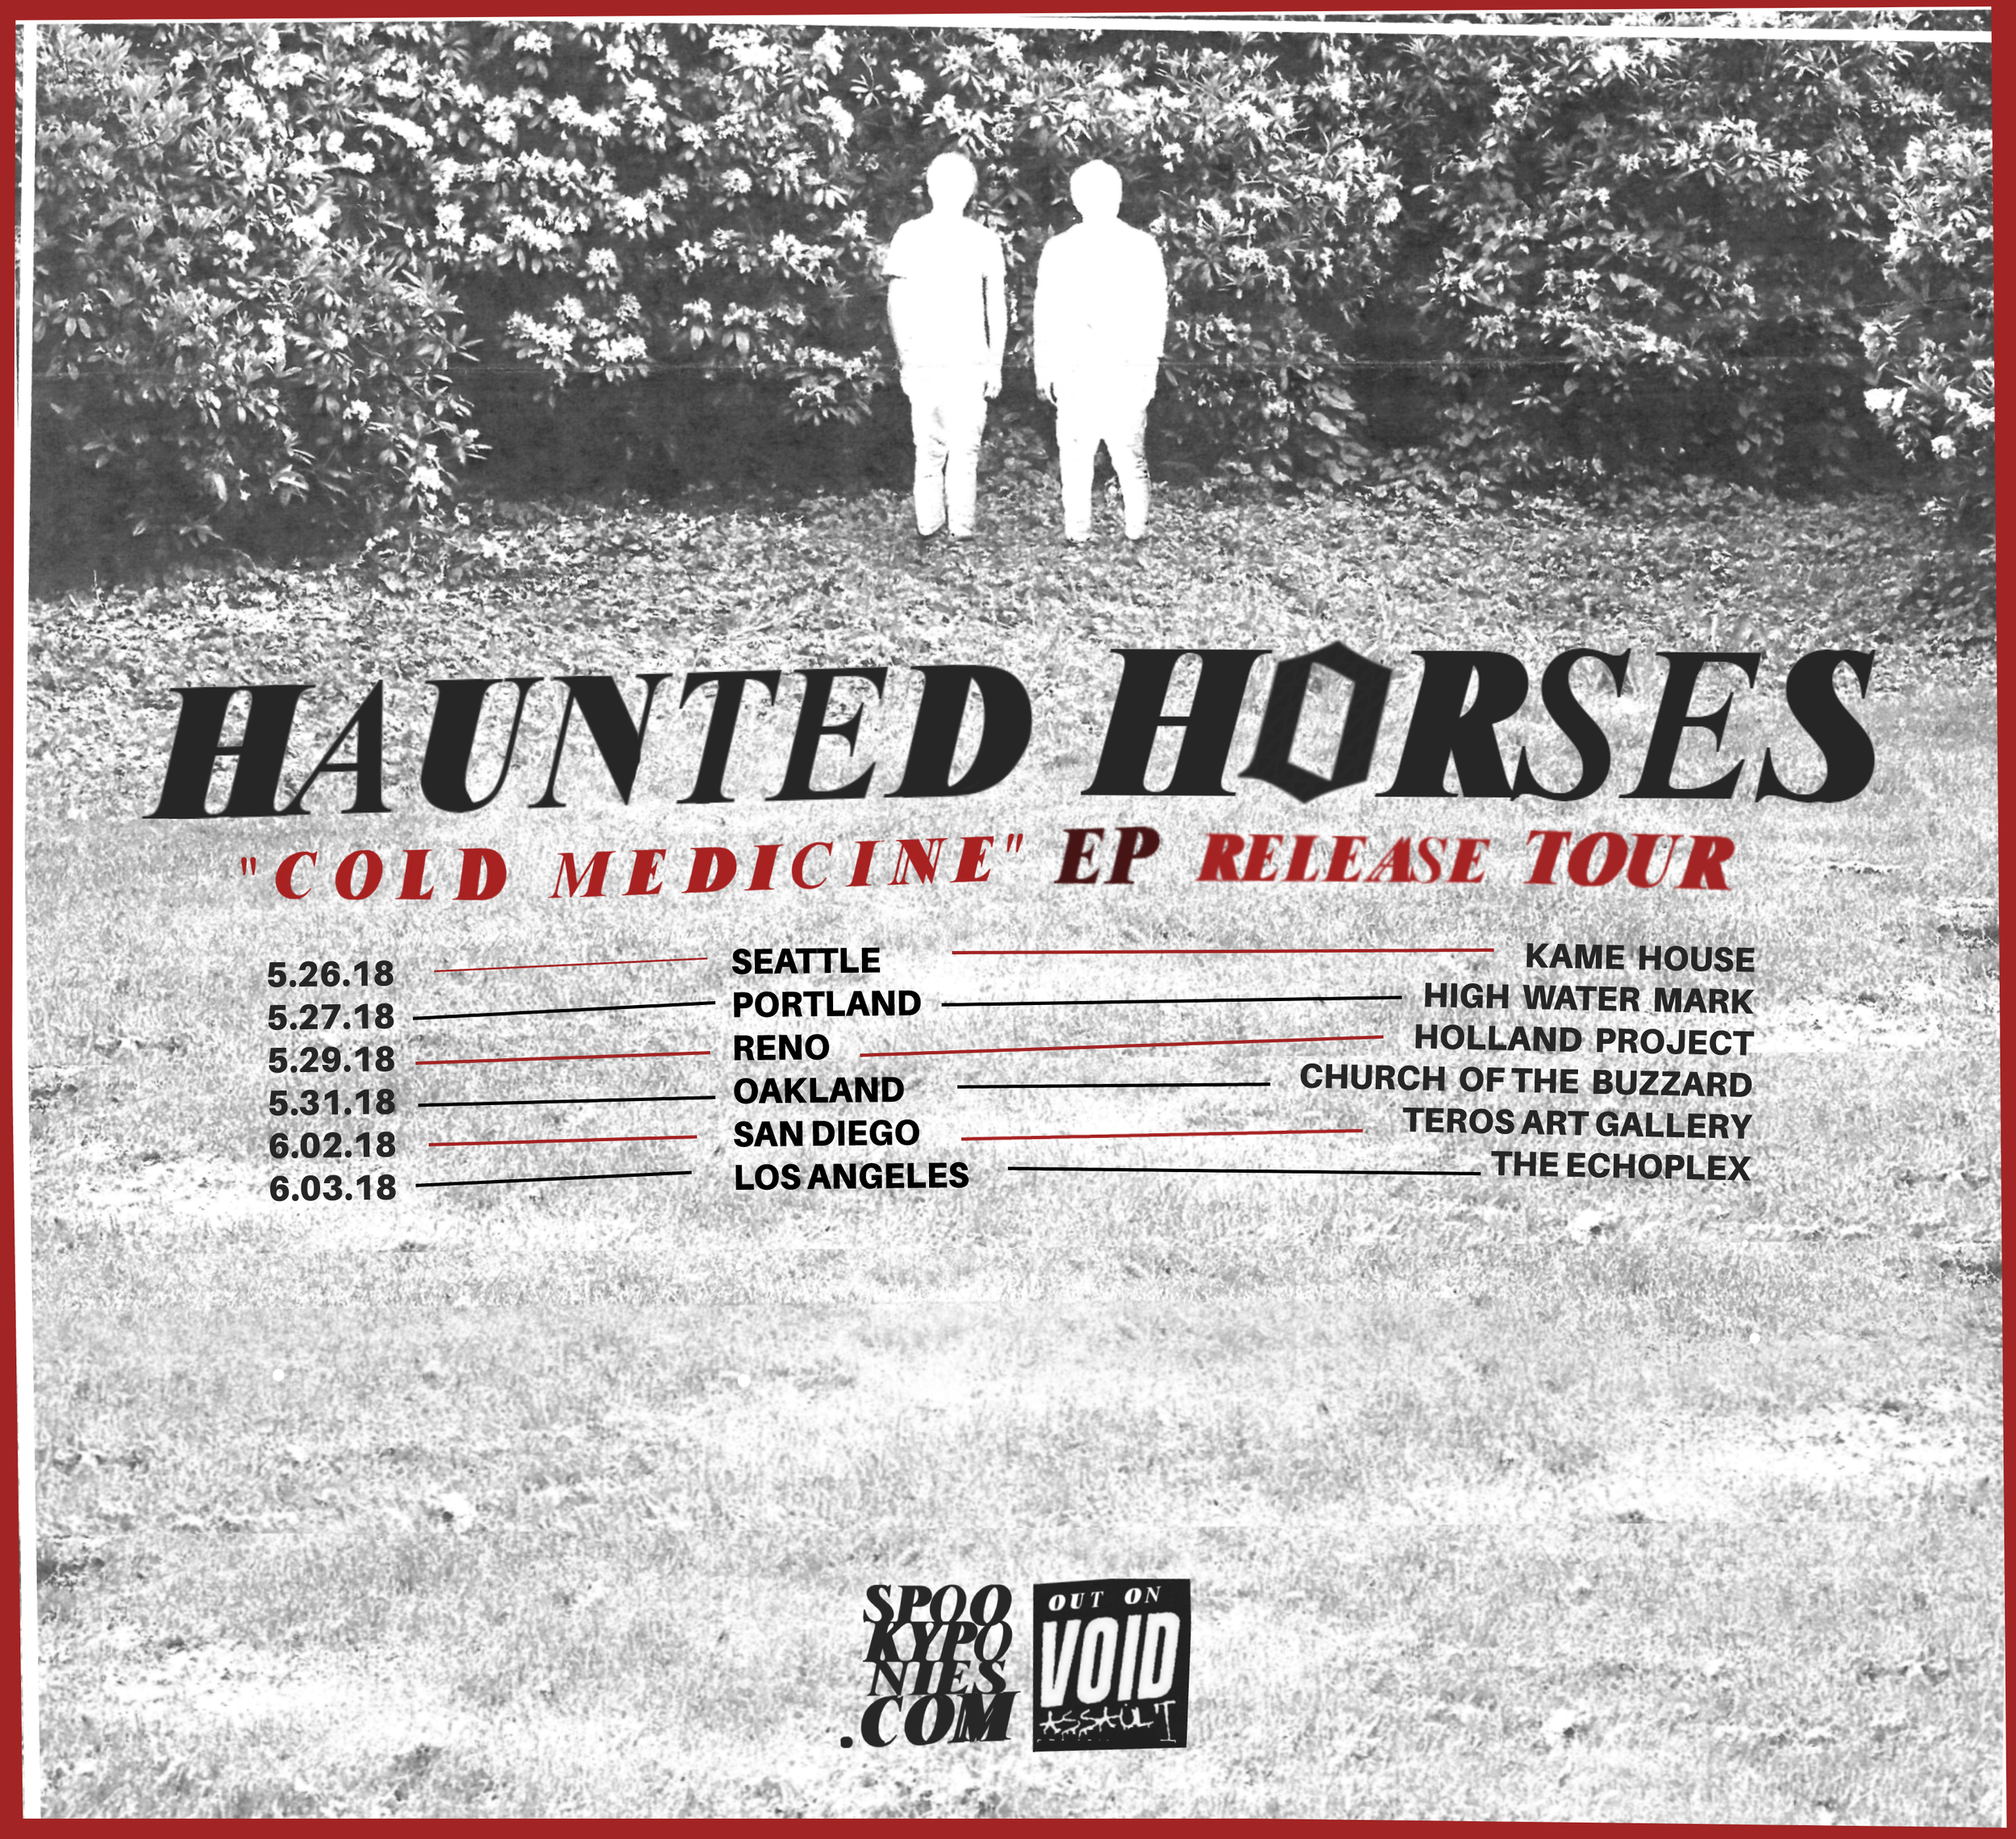 Haunted Horses 2018 West Coast Tour begins on May 26th.